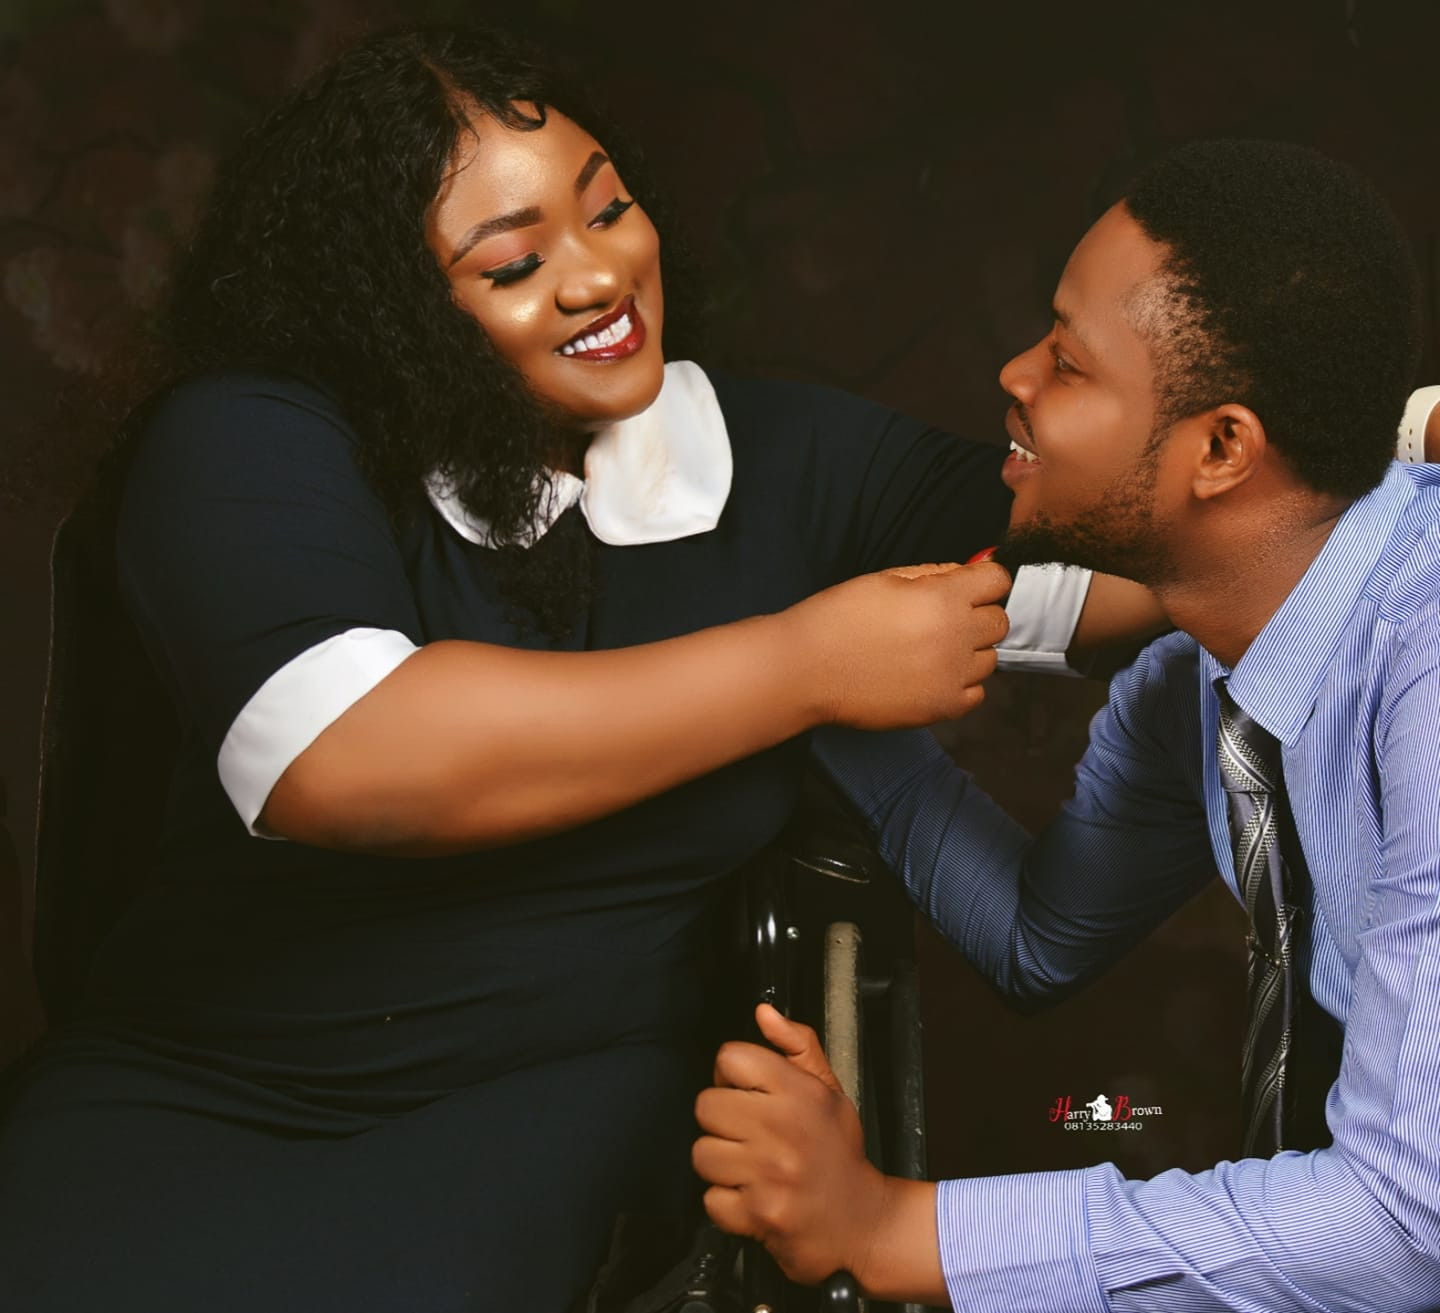 """""""I got me the finest, tallest, kindest man"""" - Physically challenged Nigerian pharmacist says as she sets to wed"""